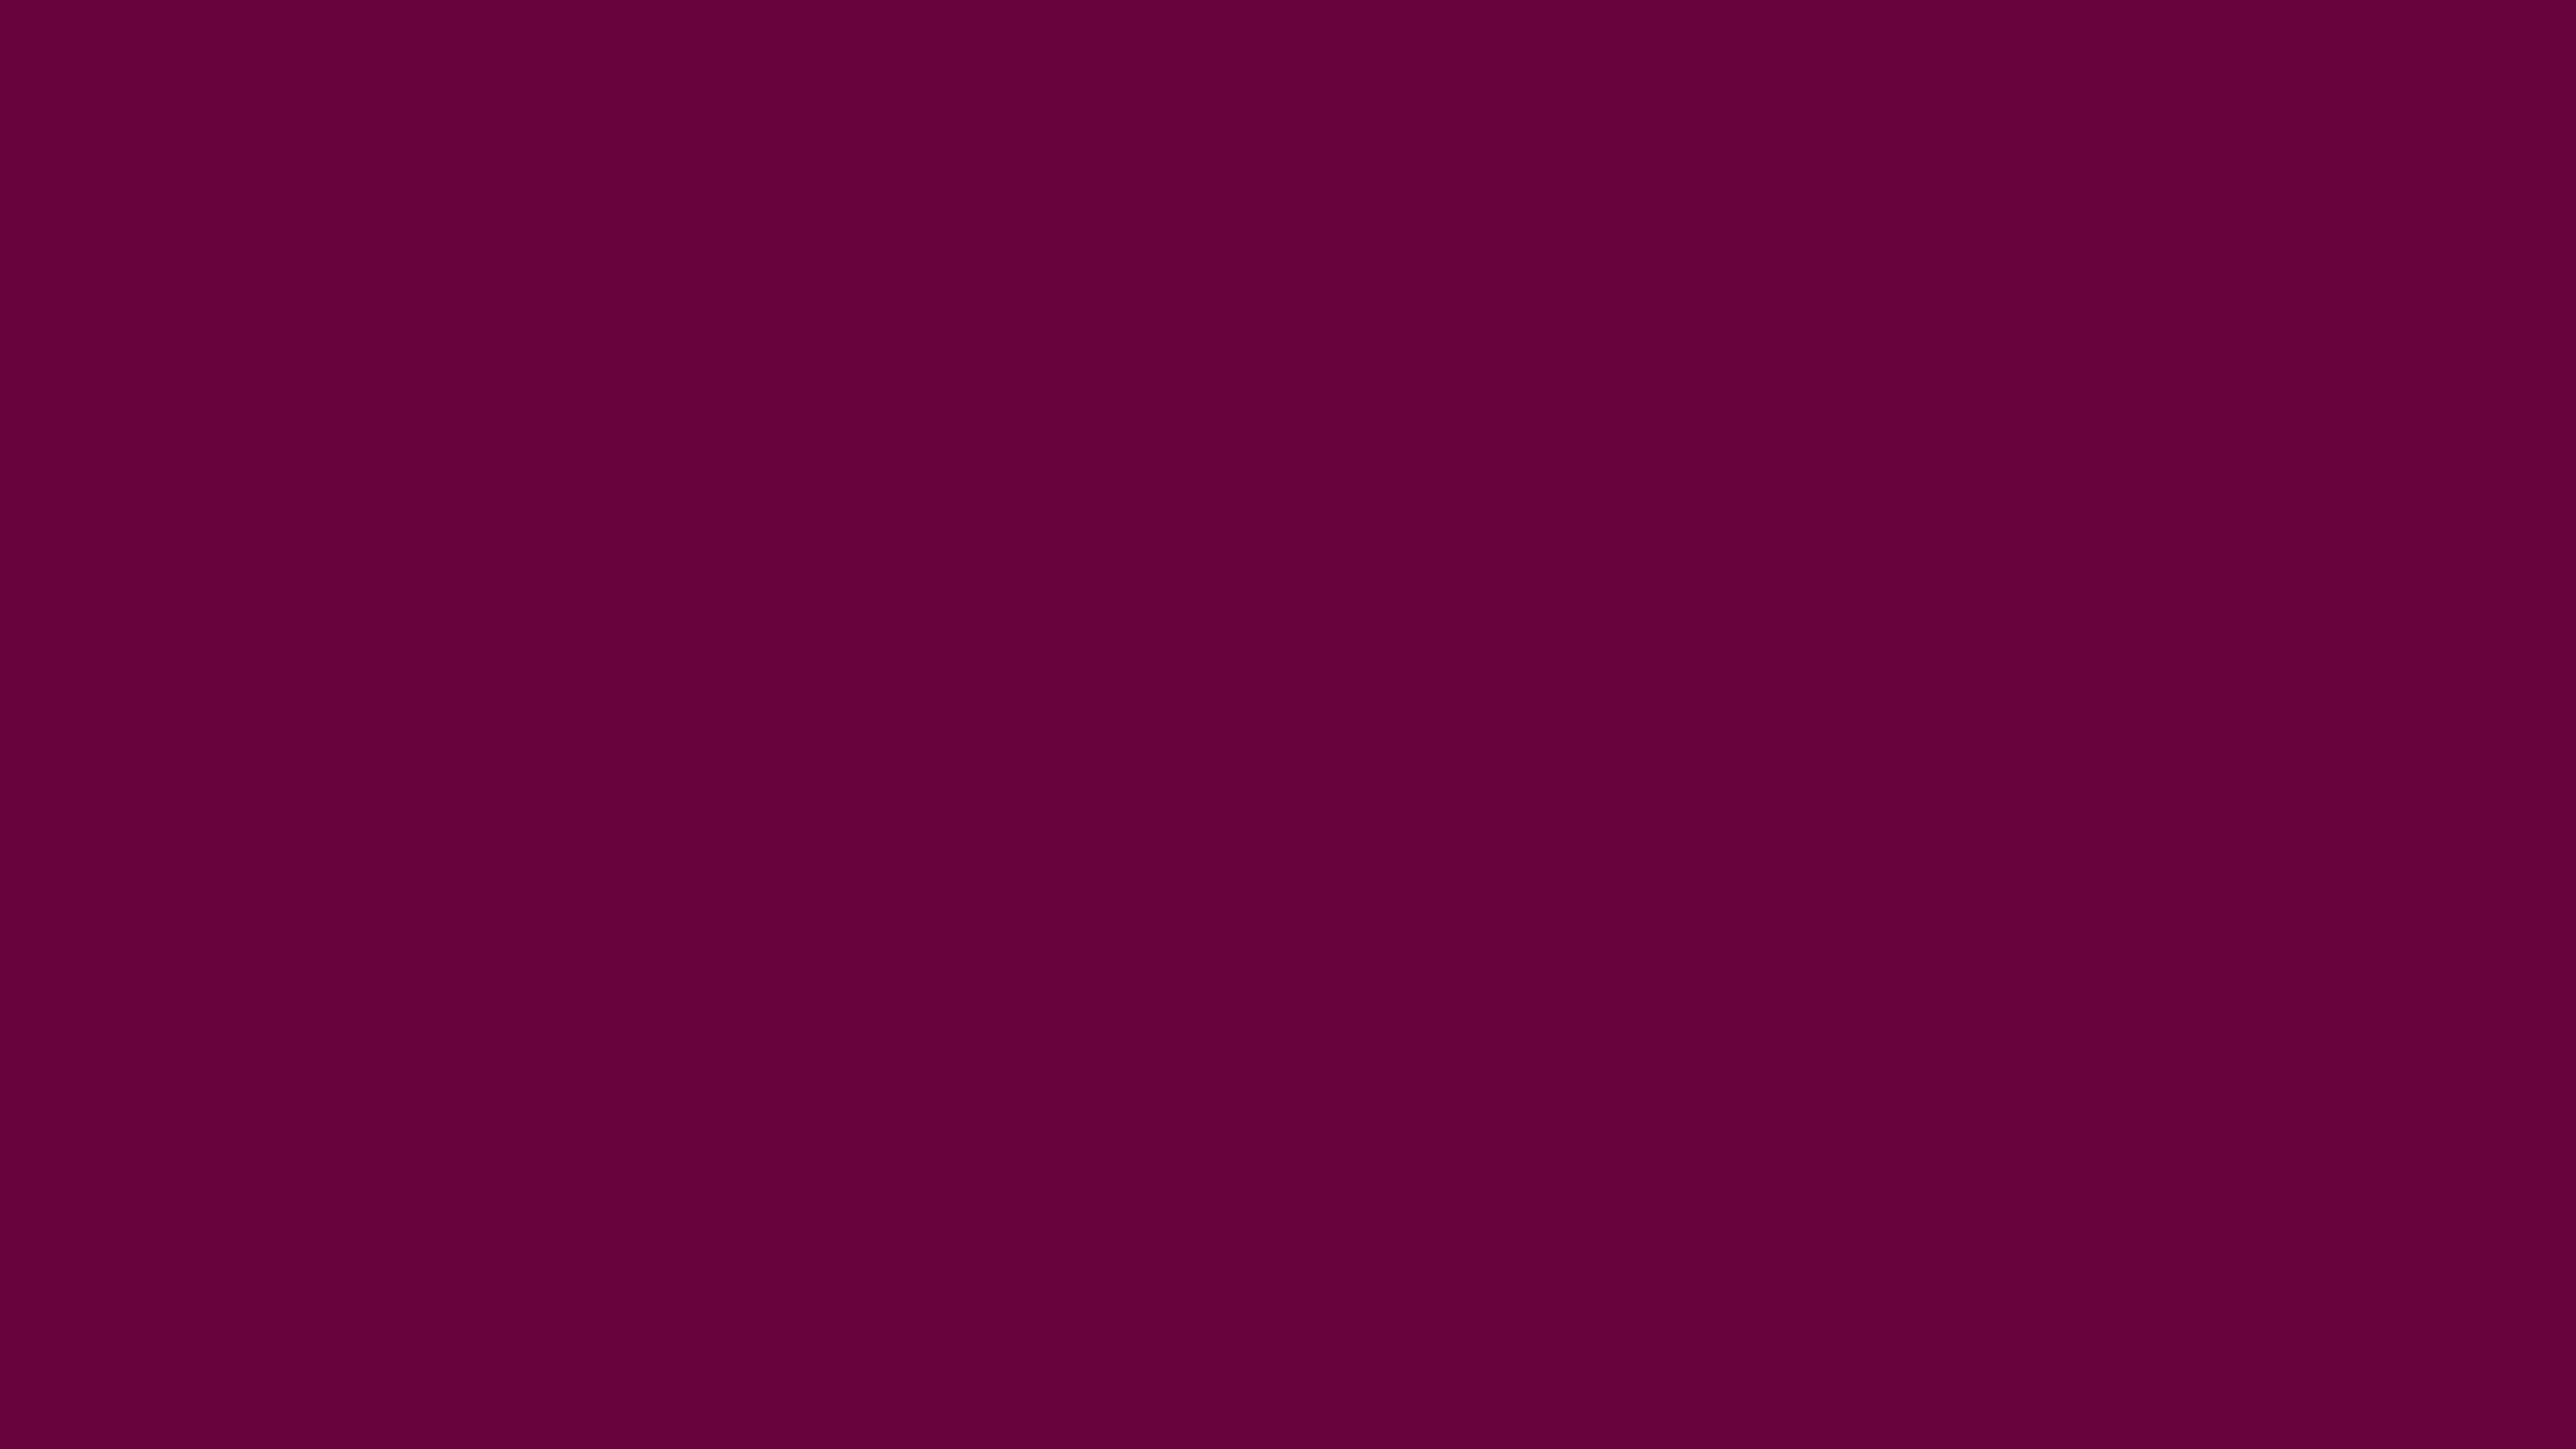 5120x2880 Imperial Purple Solid Color Background